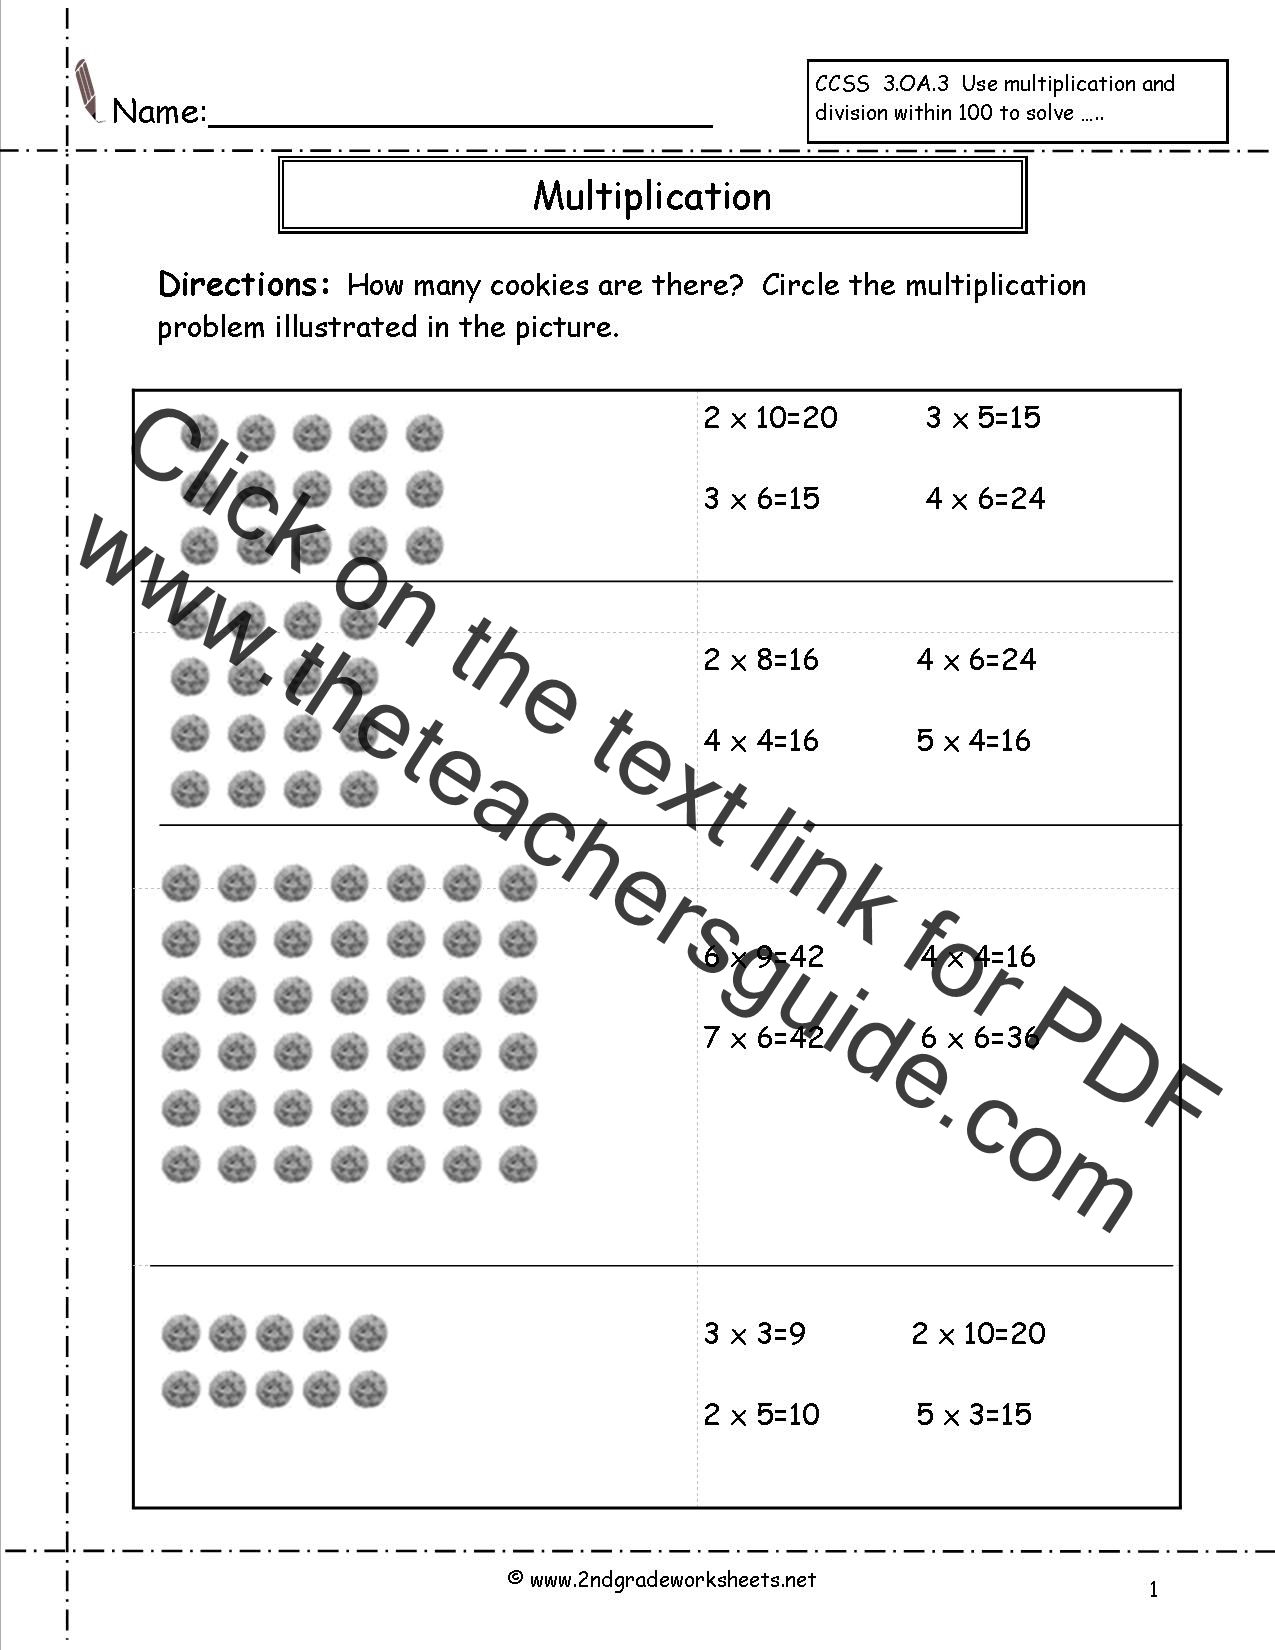 Multiplication Arrays Worksheets – Multiplying by 2 Worksheets